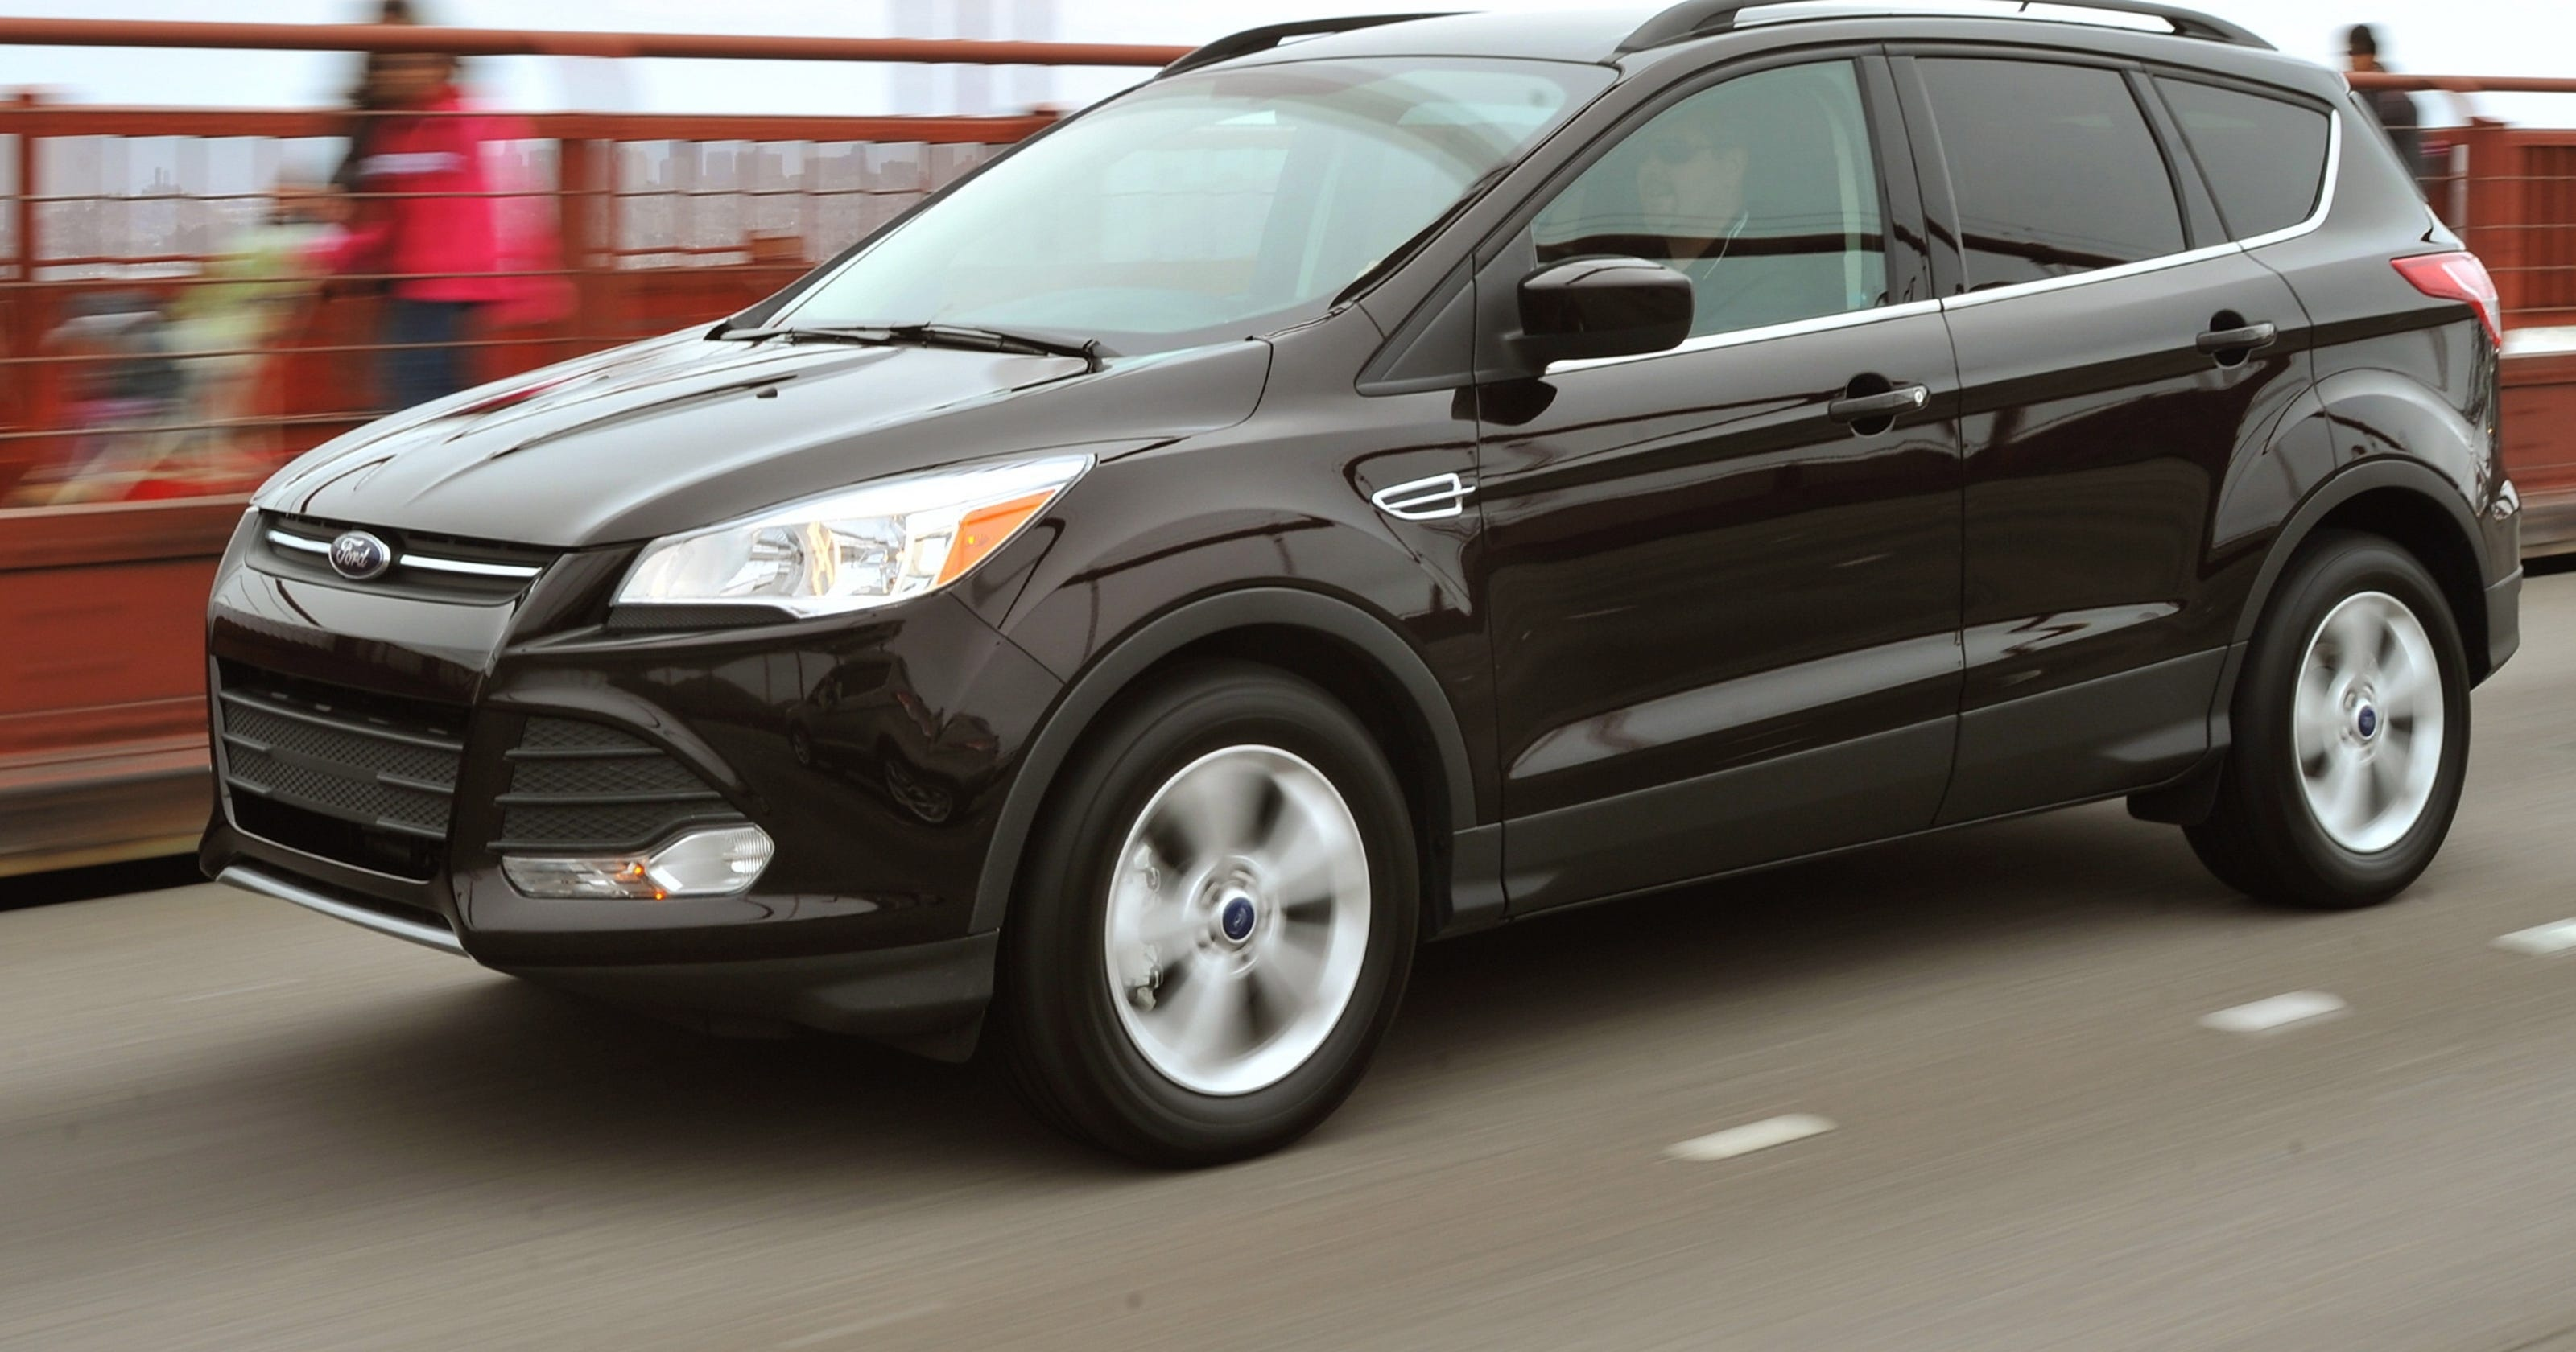 Ford blames coolant system for Escape Fusion fires